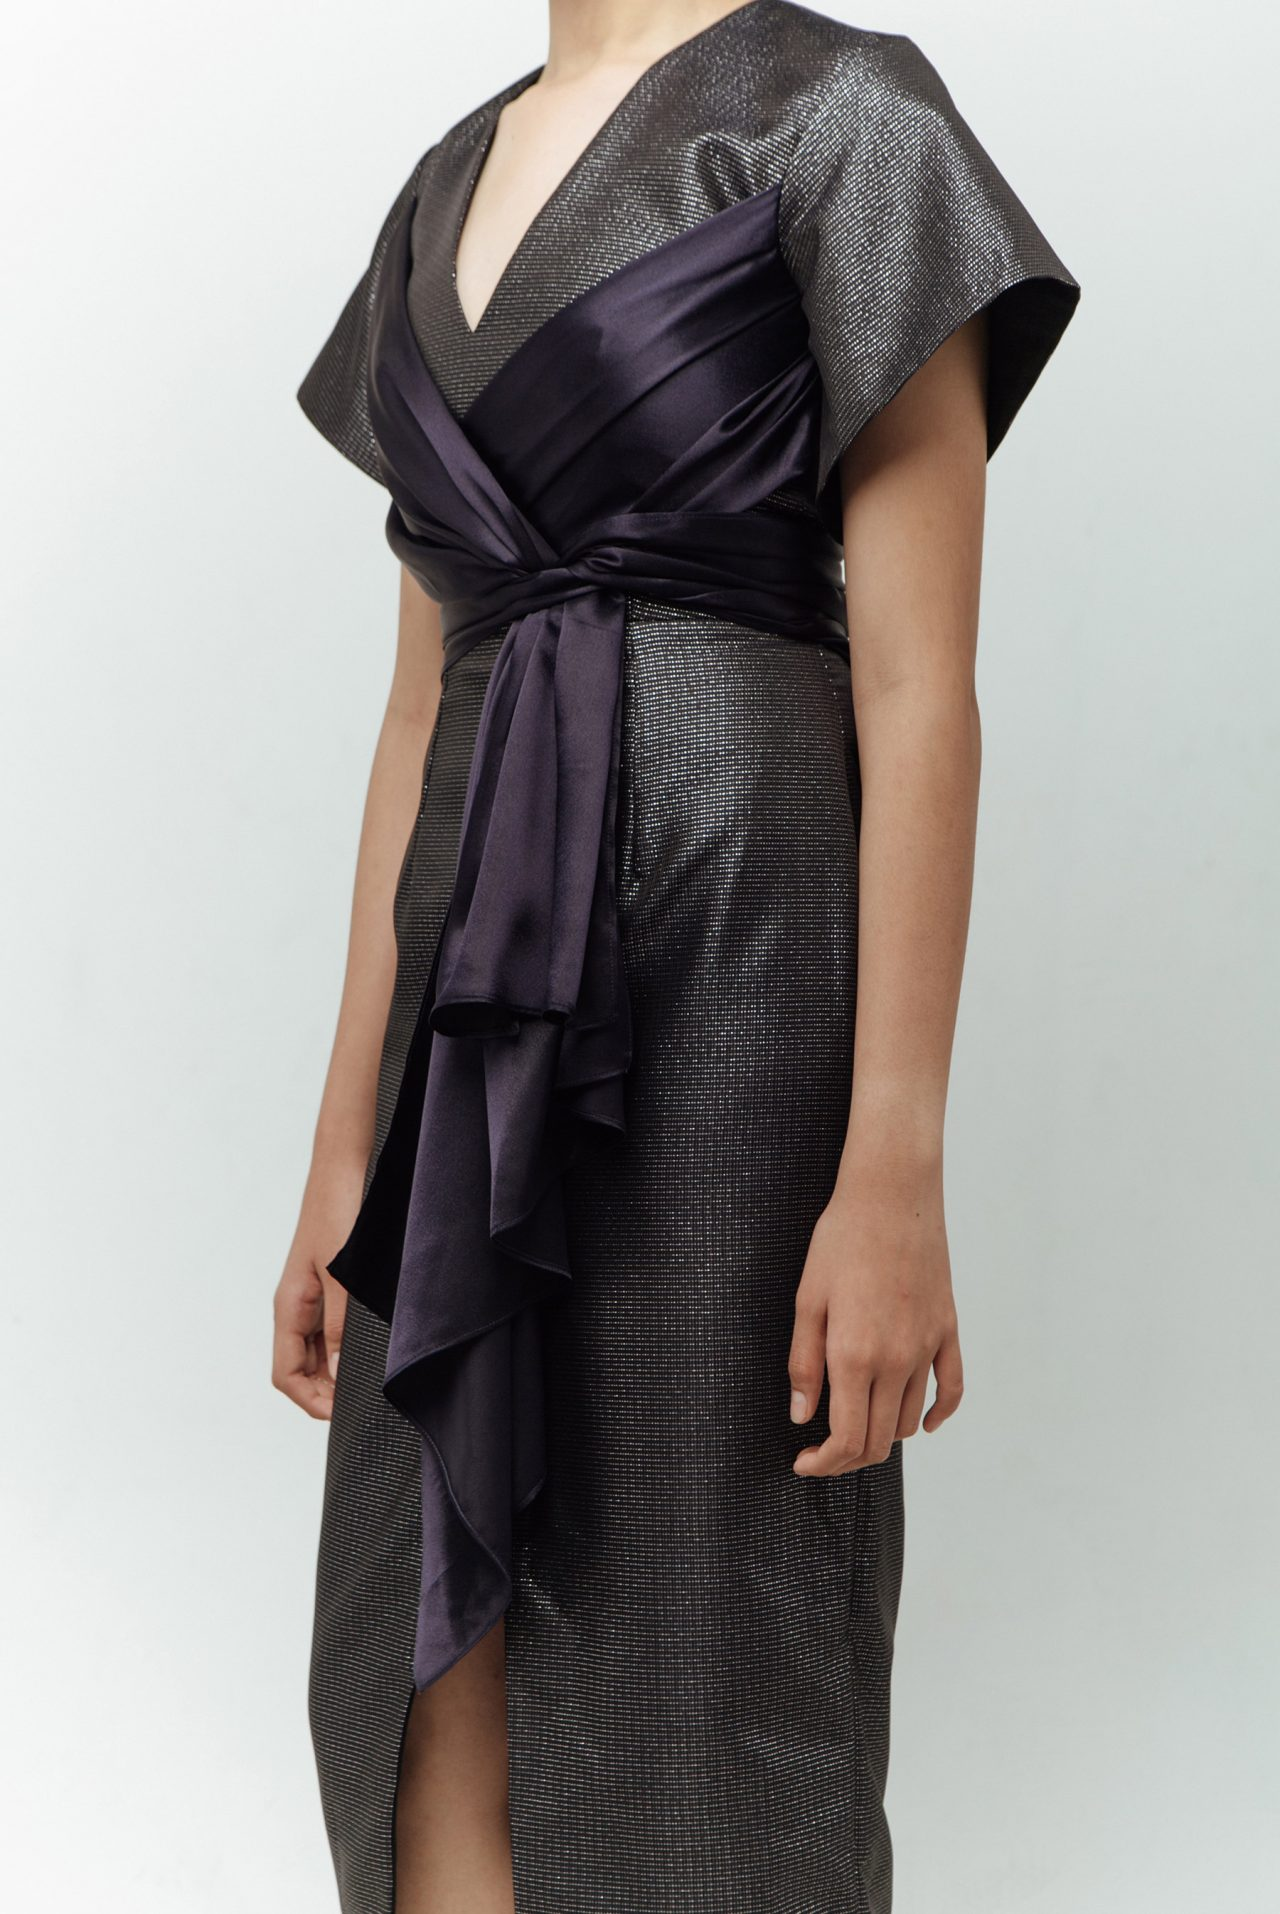 BACK-DETAIL-WITH-FRONT-RIBBON-MIDI-DRESS-1